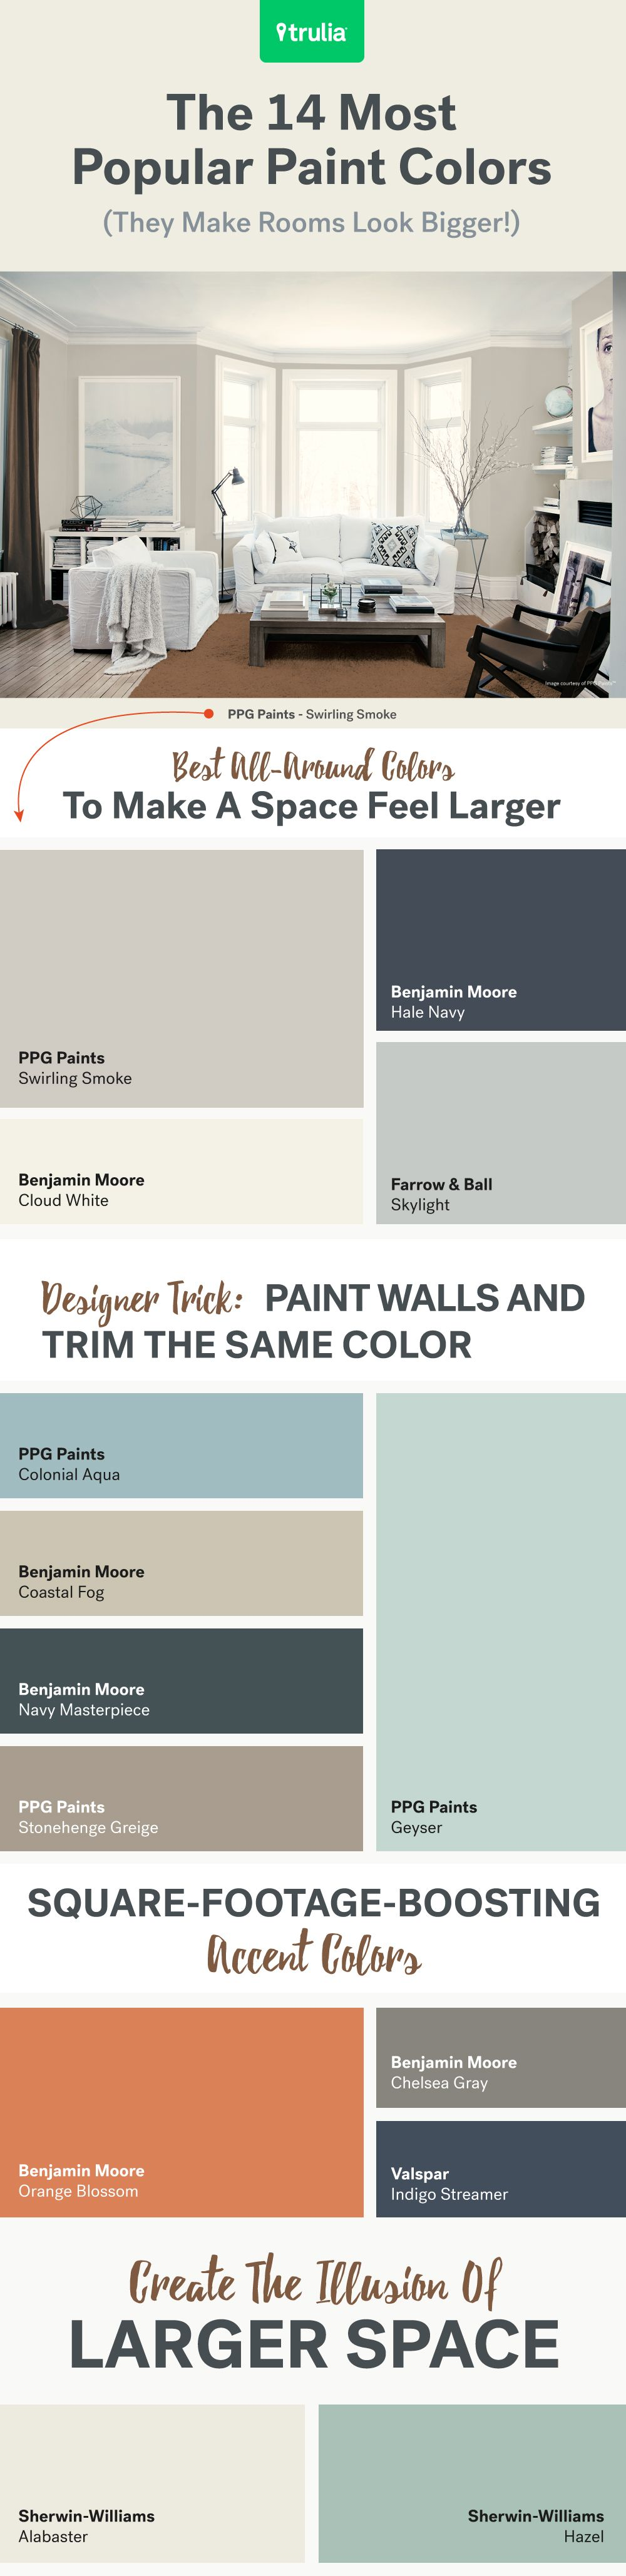 14 popular paint colors for small rooms life at home trulia 14 popular paint colors for small rooms life at home trulia blog